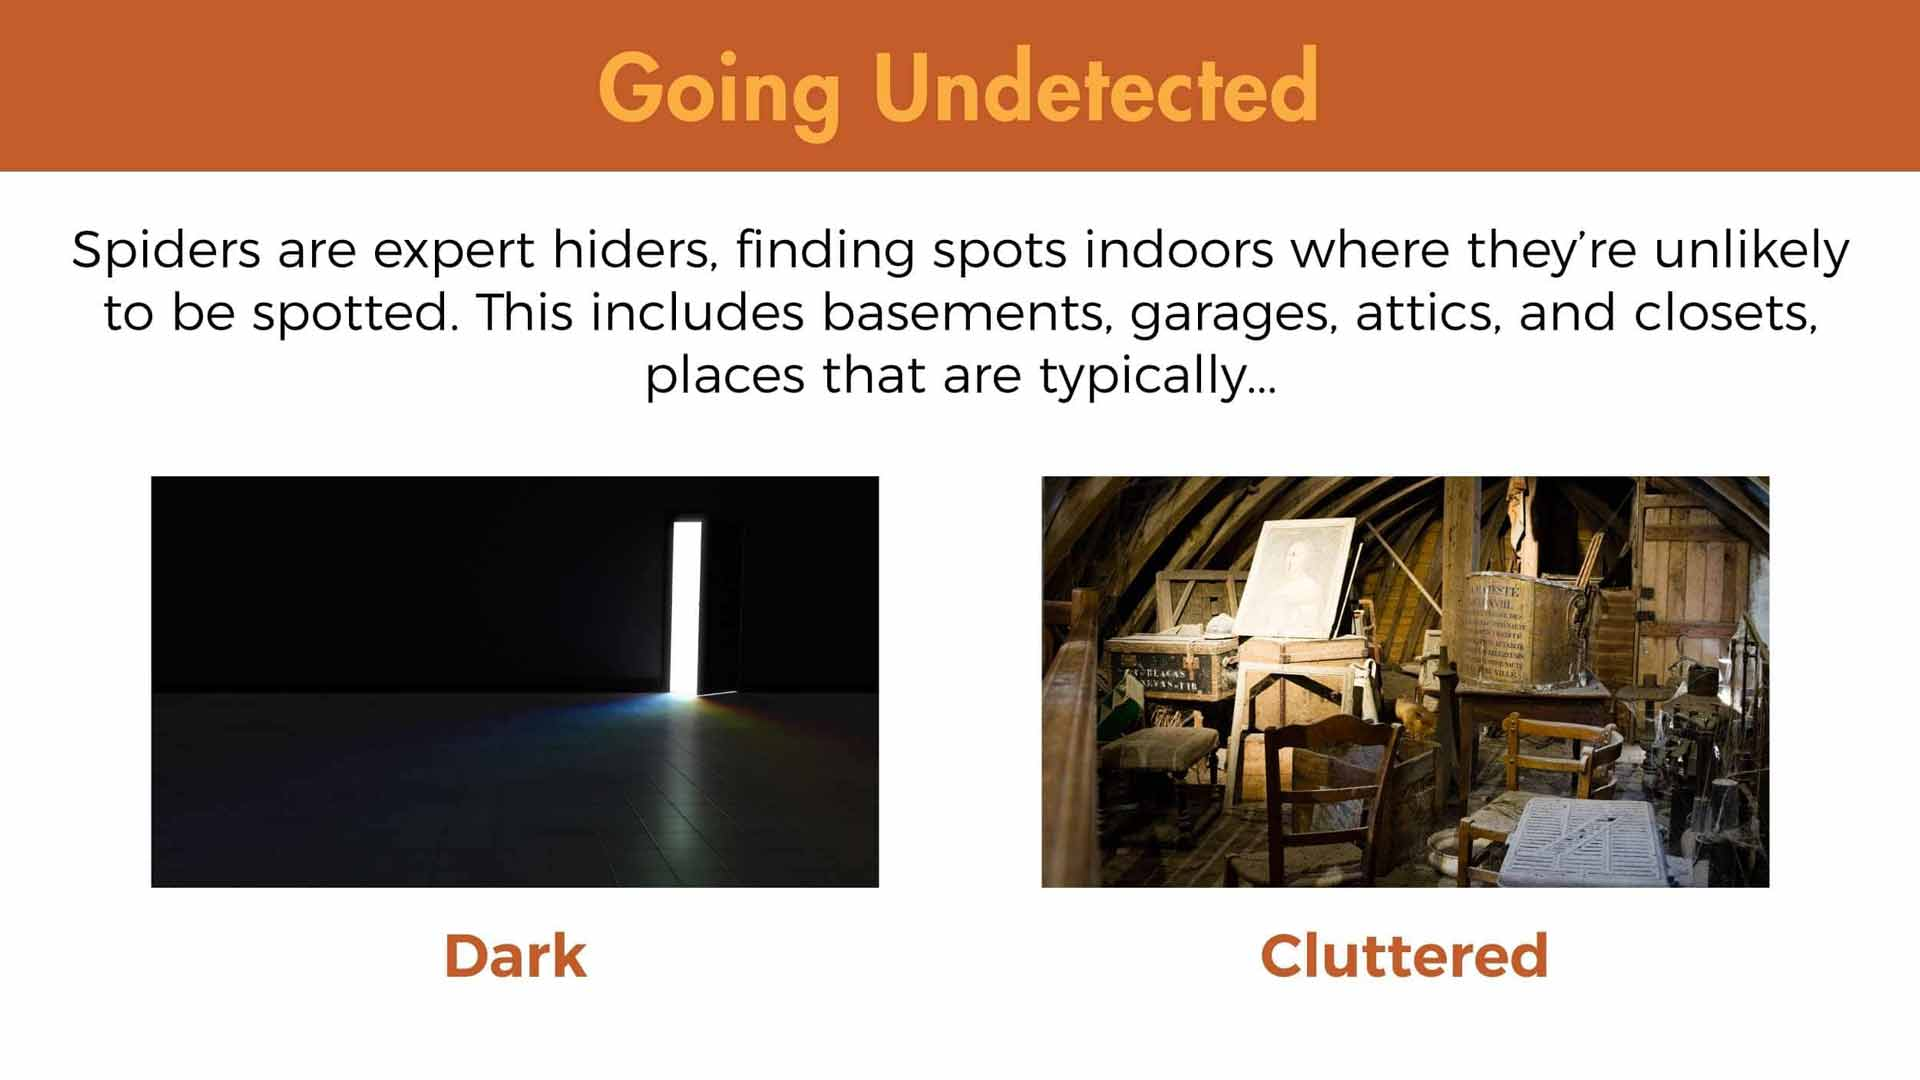 Spiders are expert hiders, finding spots indoors where they're unlikely to be spotted. This includes basements, garages, attics, and closets, places that are typically dark and cluttered.